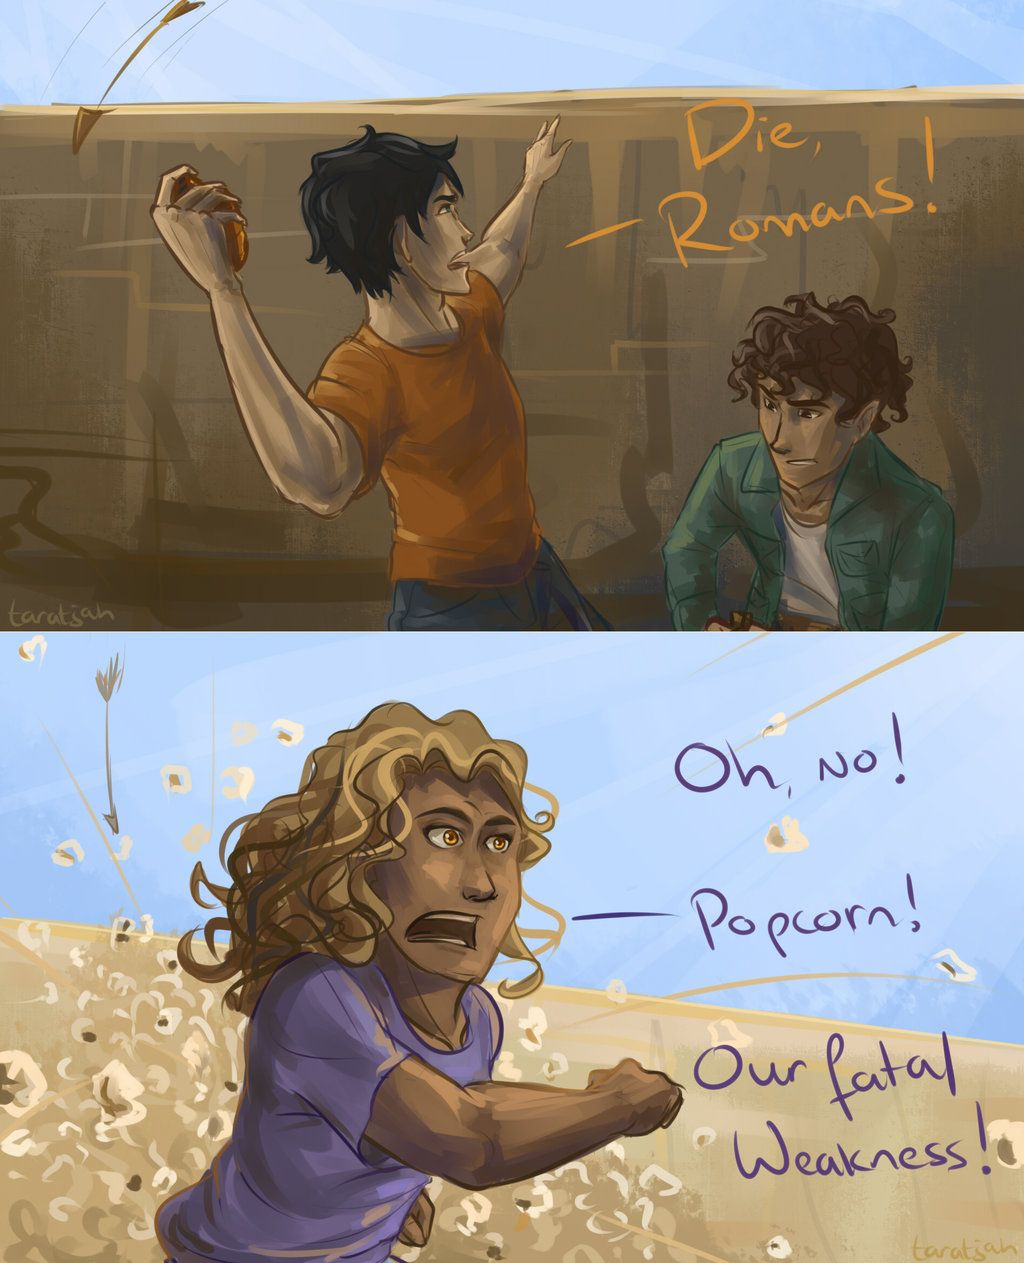 Libros Xd Good One Hazel Xd Popcorn By Taratjah Deviantart On